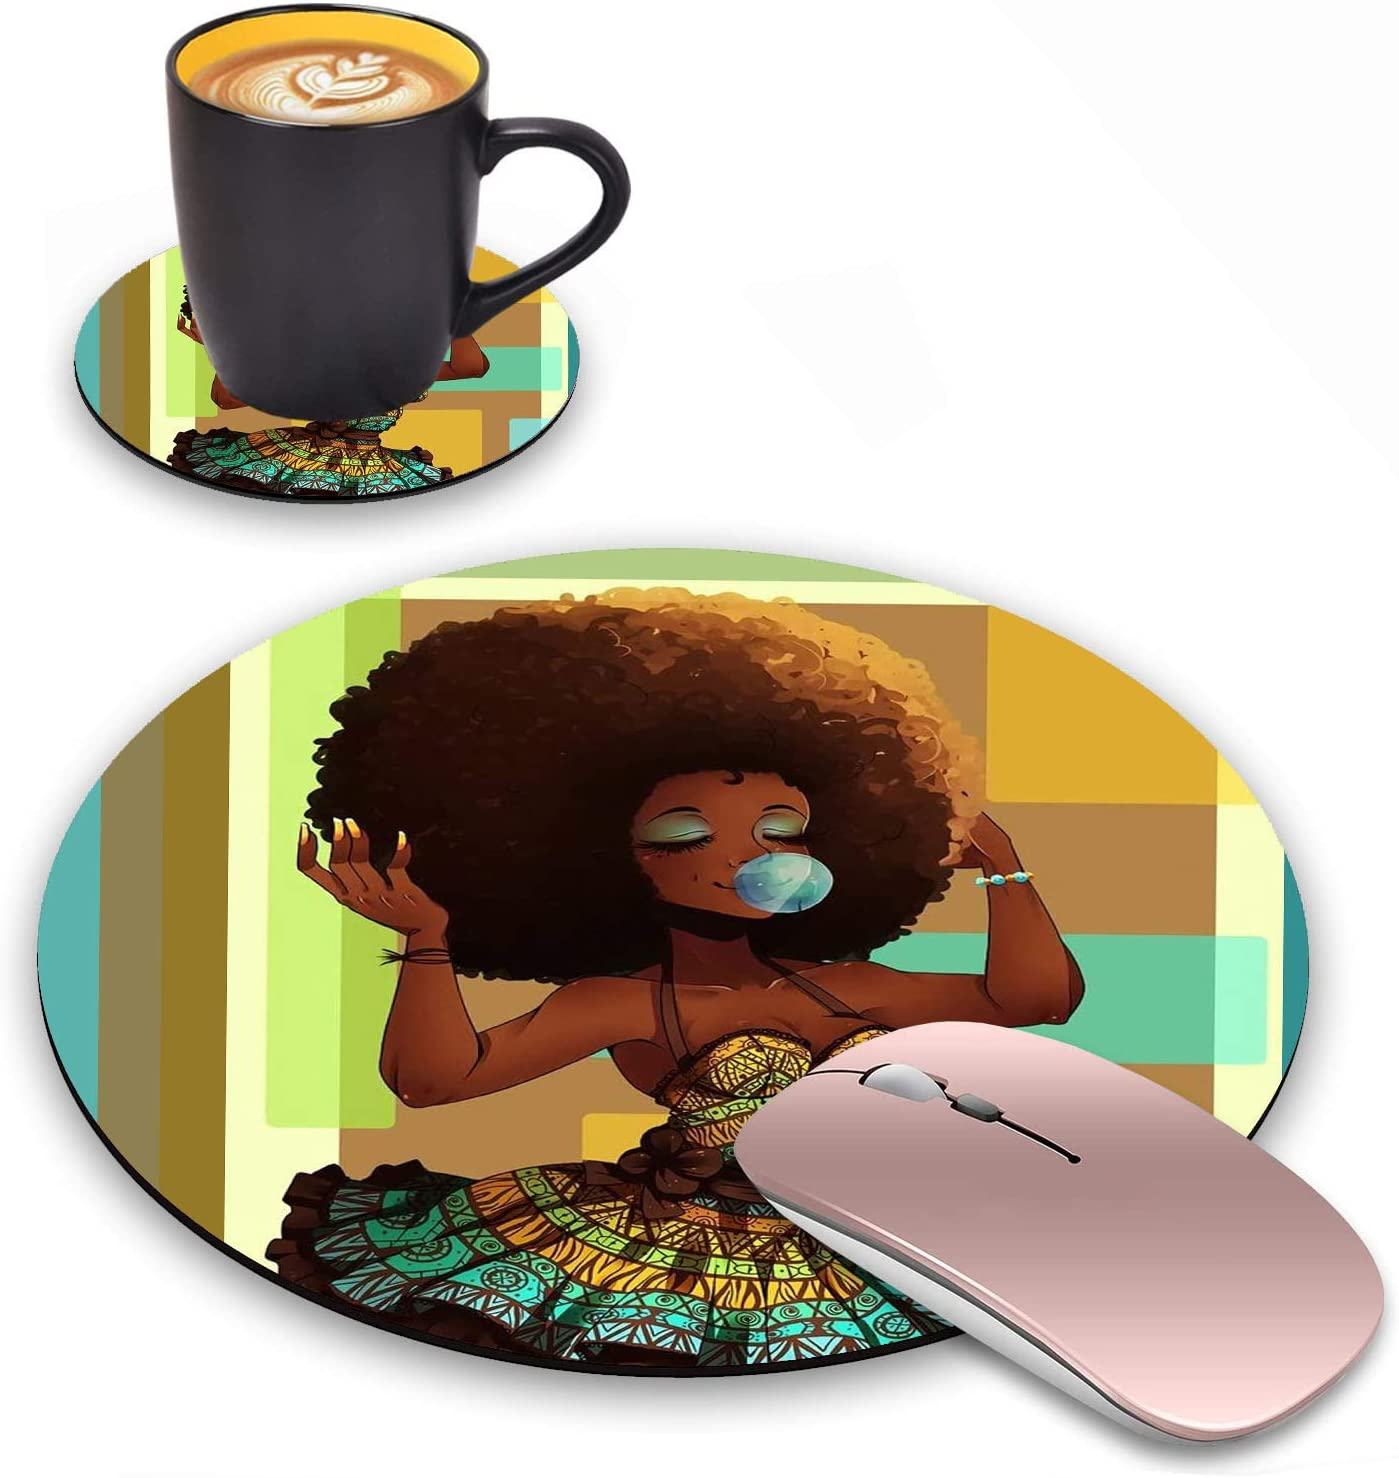 Log Zog Round Mouse Pad with Coasters Set, African American Girl Design Mouse Pad Non-Slip Rubber Mousepad Office Accessories Desk Decor Mouse Pads for Computers Laptop